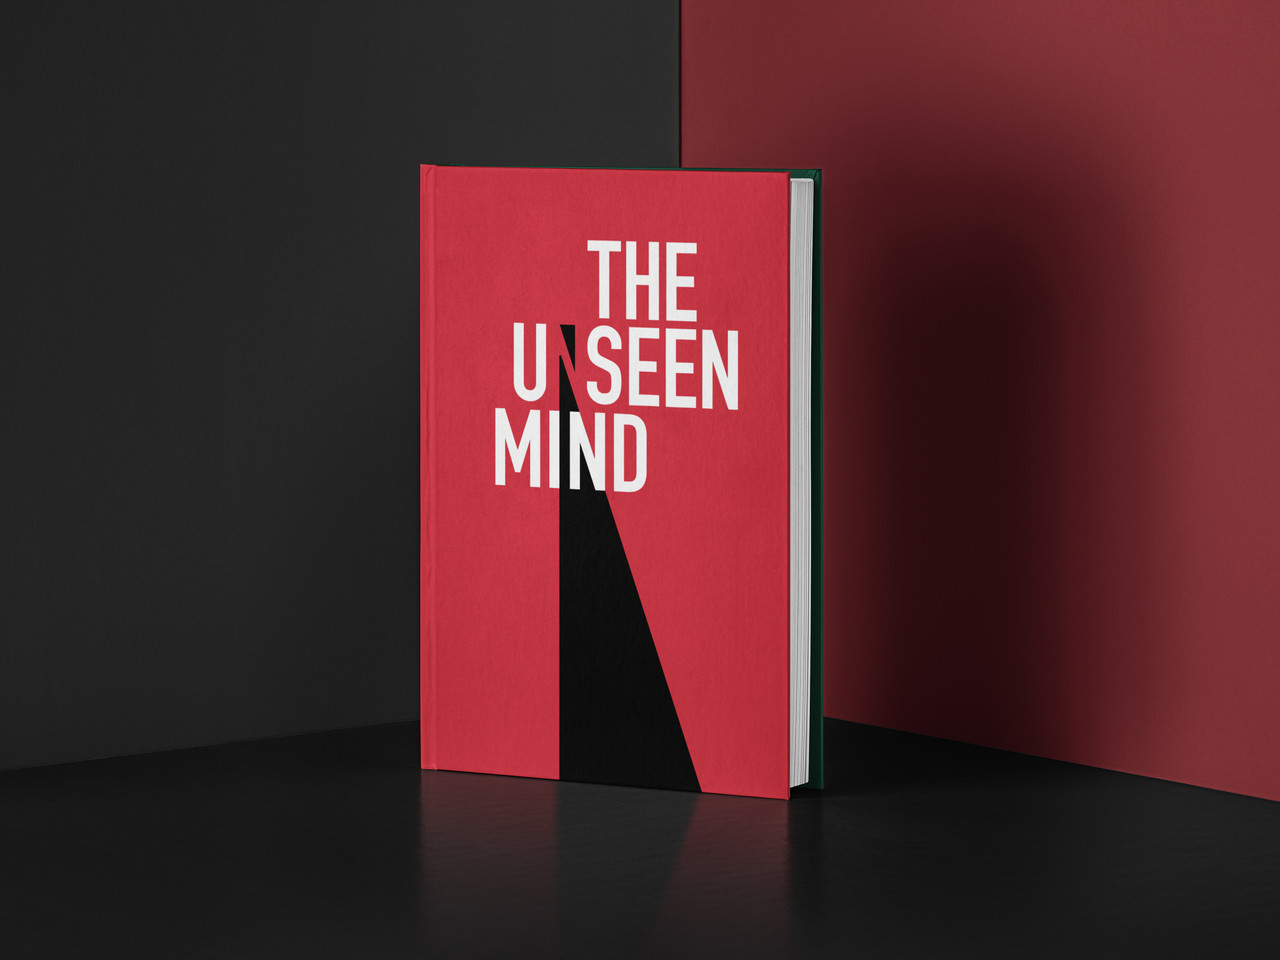 The Unseen Mind